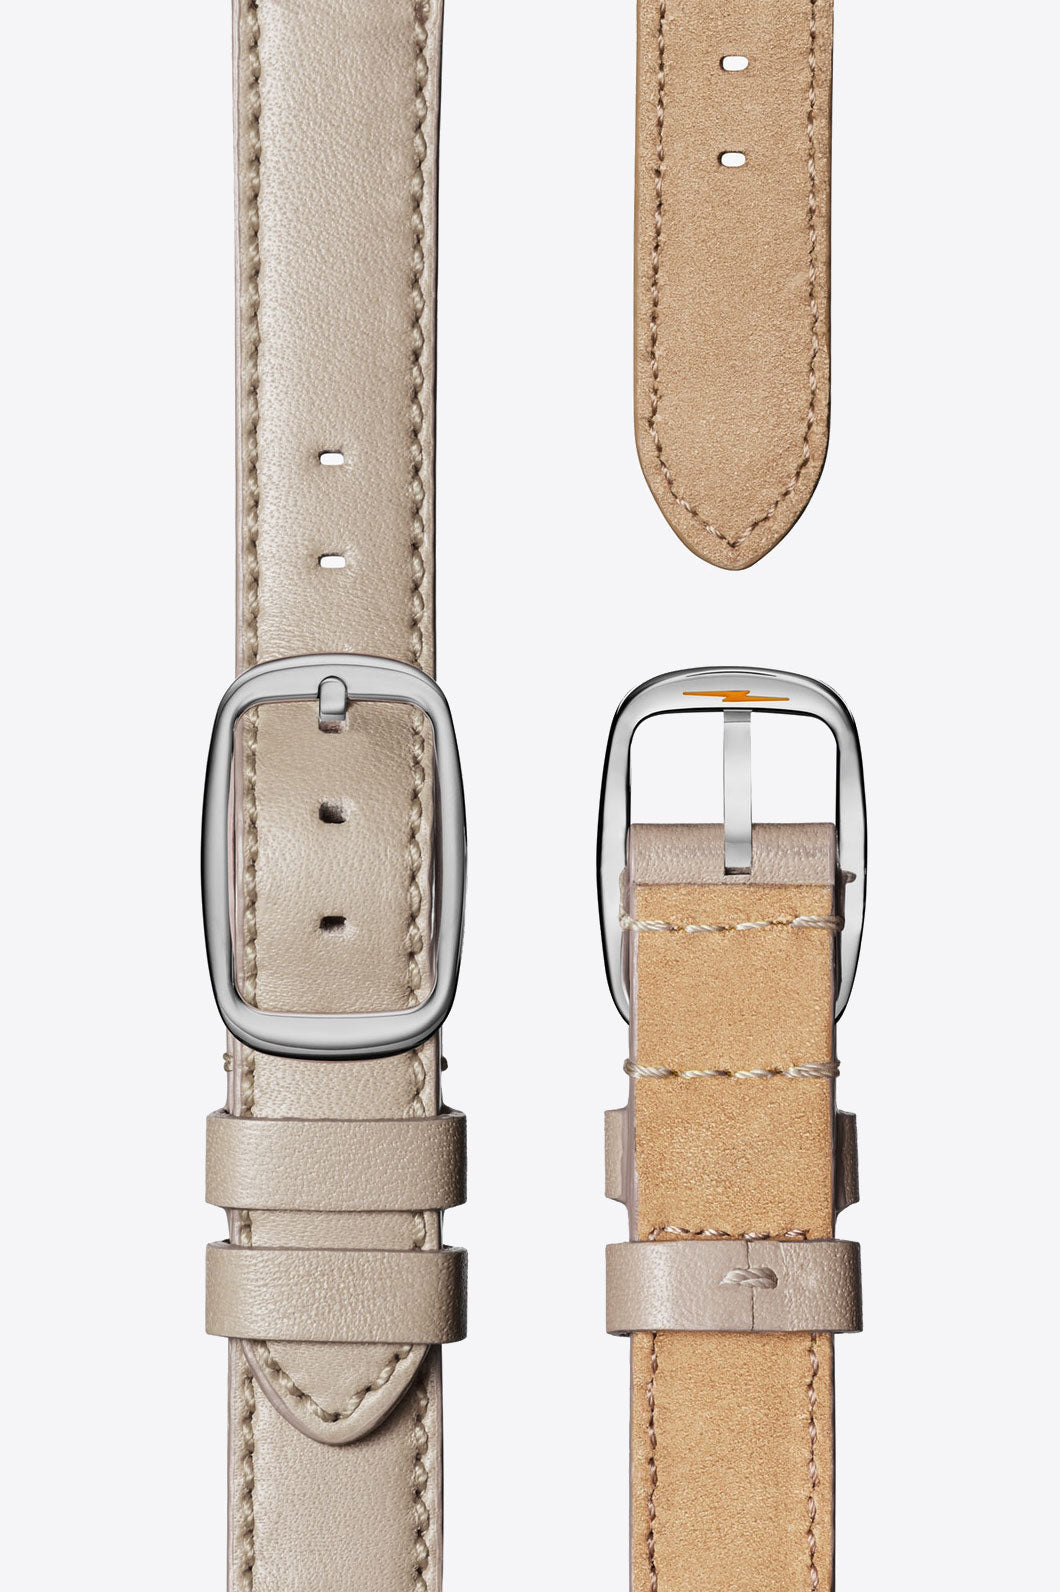 Shinola Cass Square 28mm Sub Second Watch in Milky White/Bone - Vert & Vogue